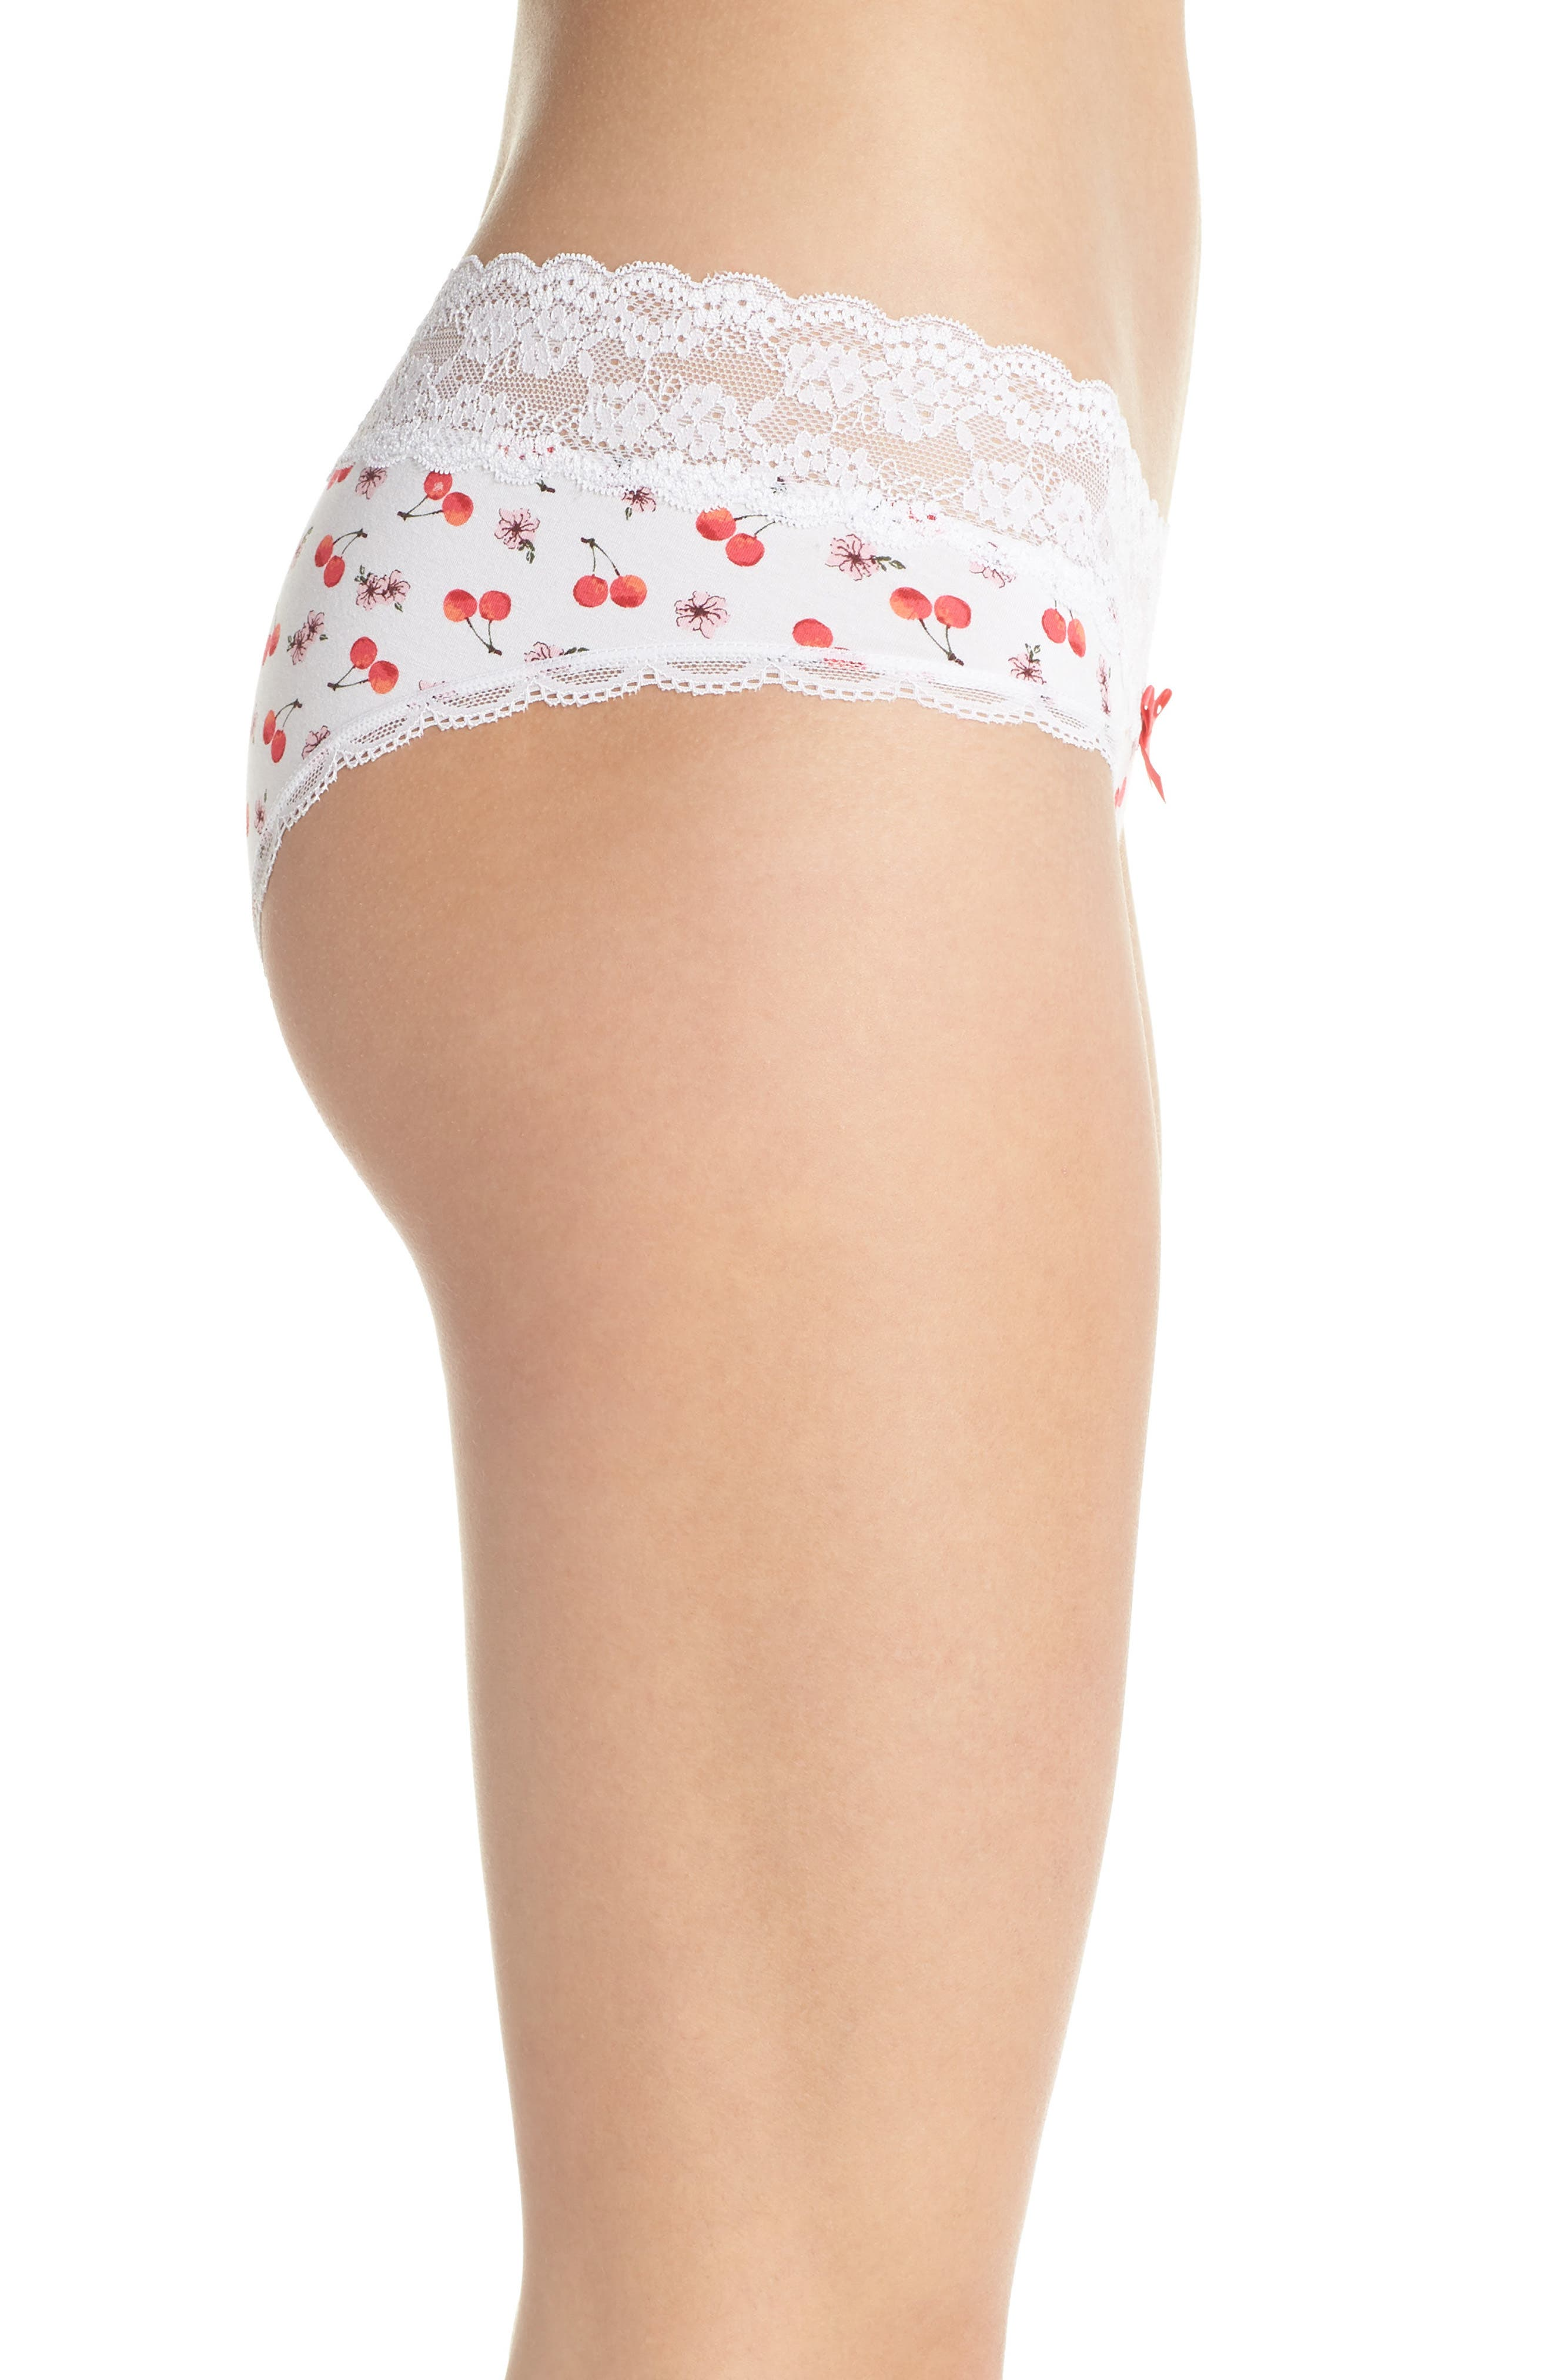 Lace Waistband Hipster Panties,                             Alternate thumbnail 3, color,                             White Cherry Blossom